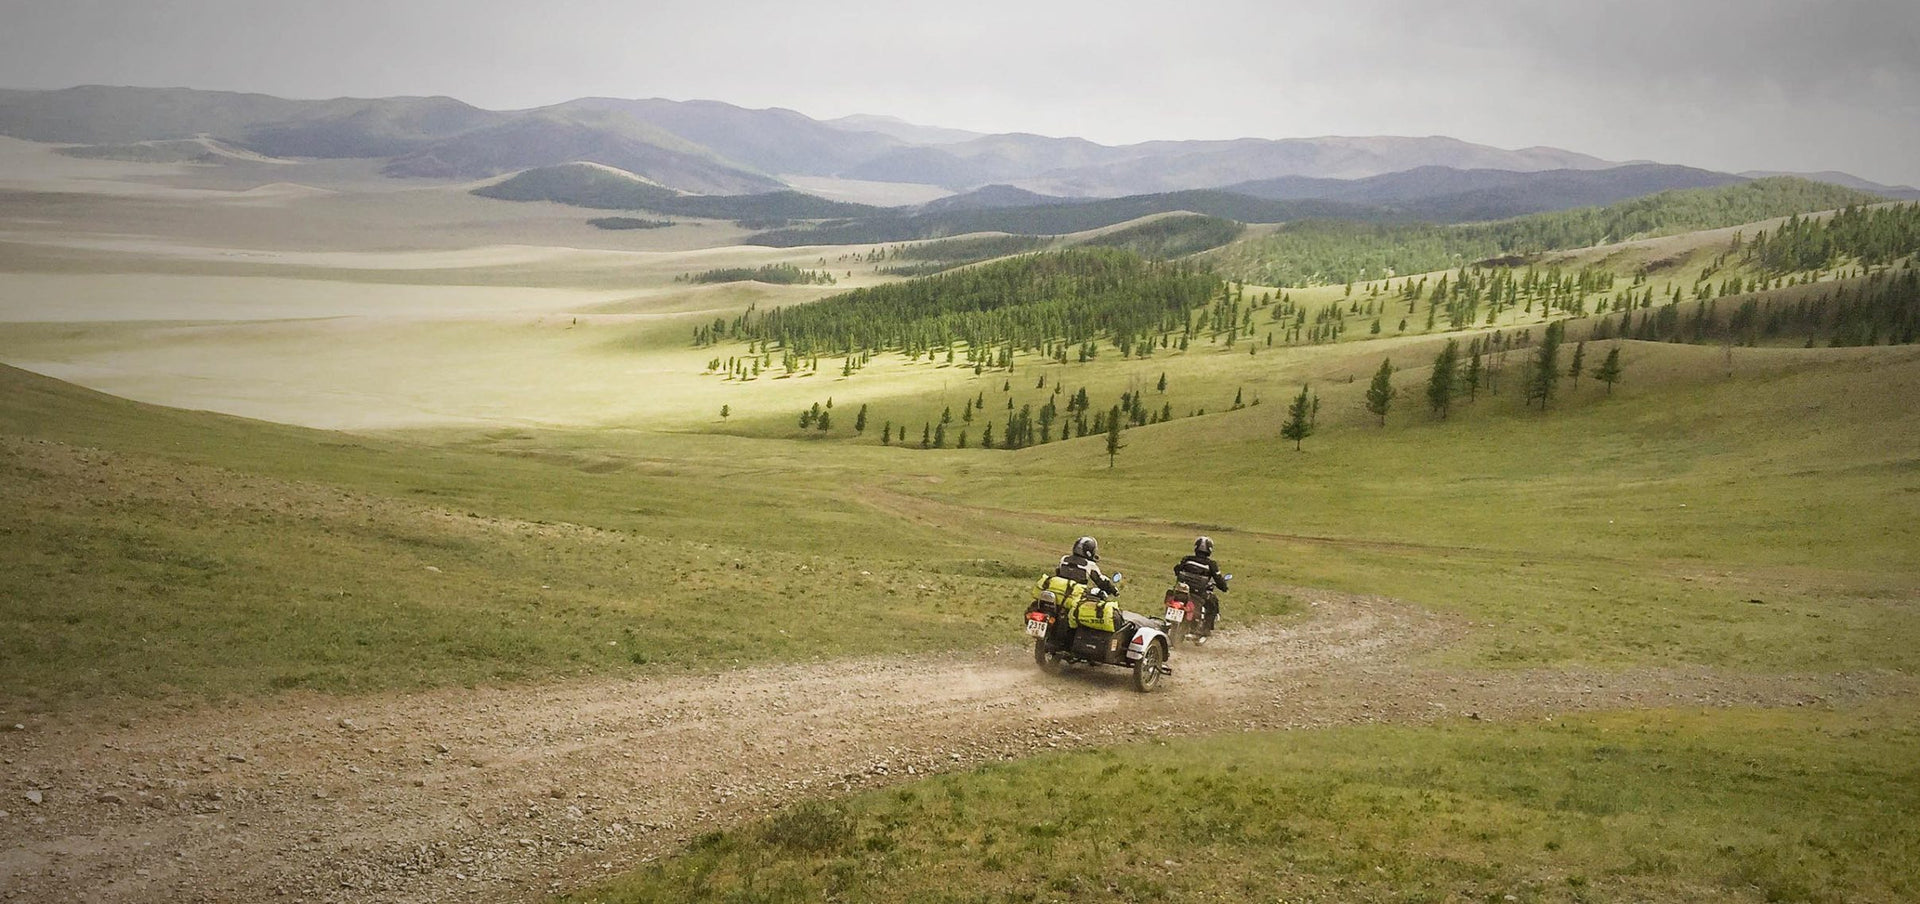 An unlikely Adventure mixing genres & making memories in mongolia